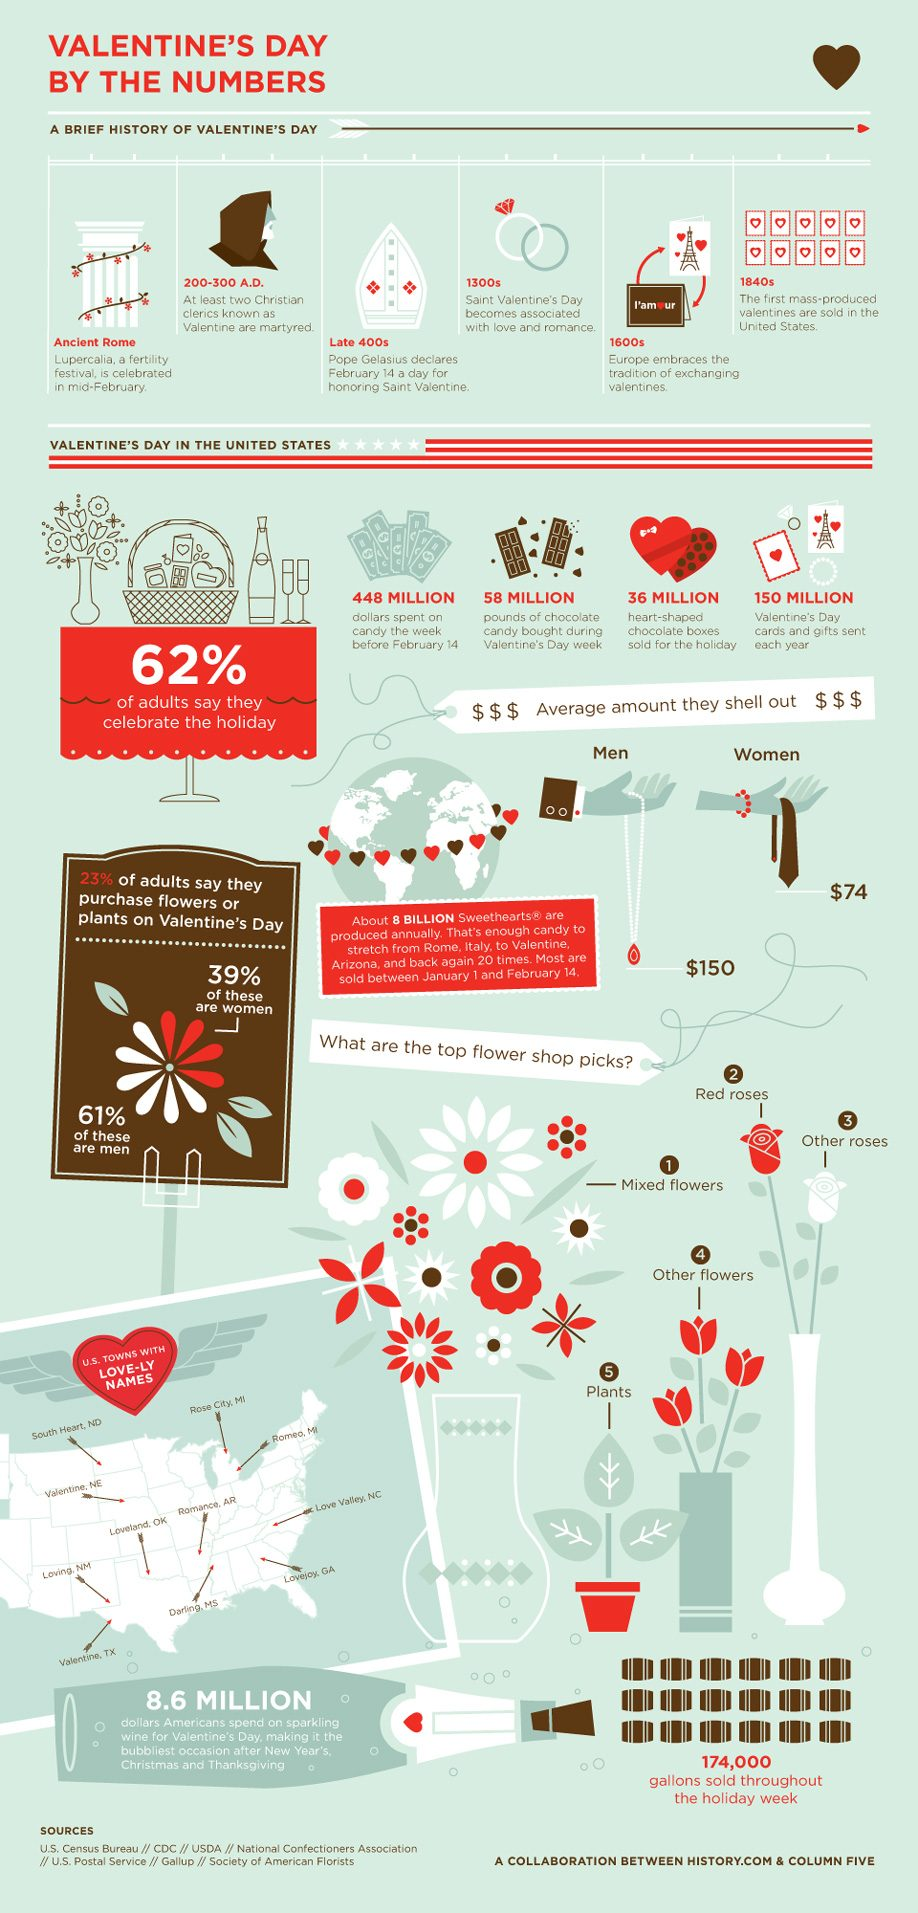 history-infographic-valentines-day-by-the-numbers-4071213